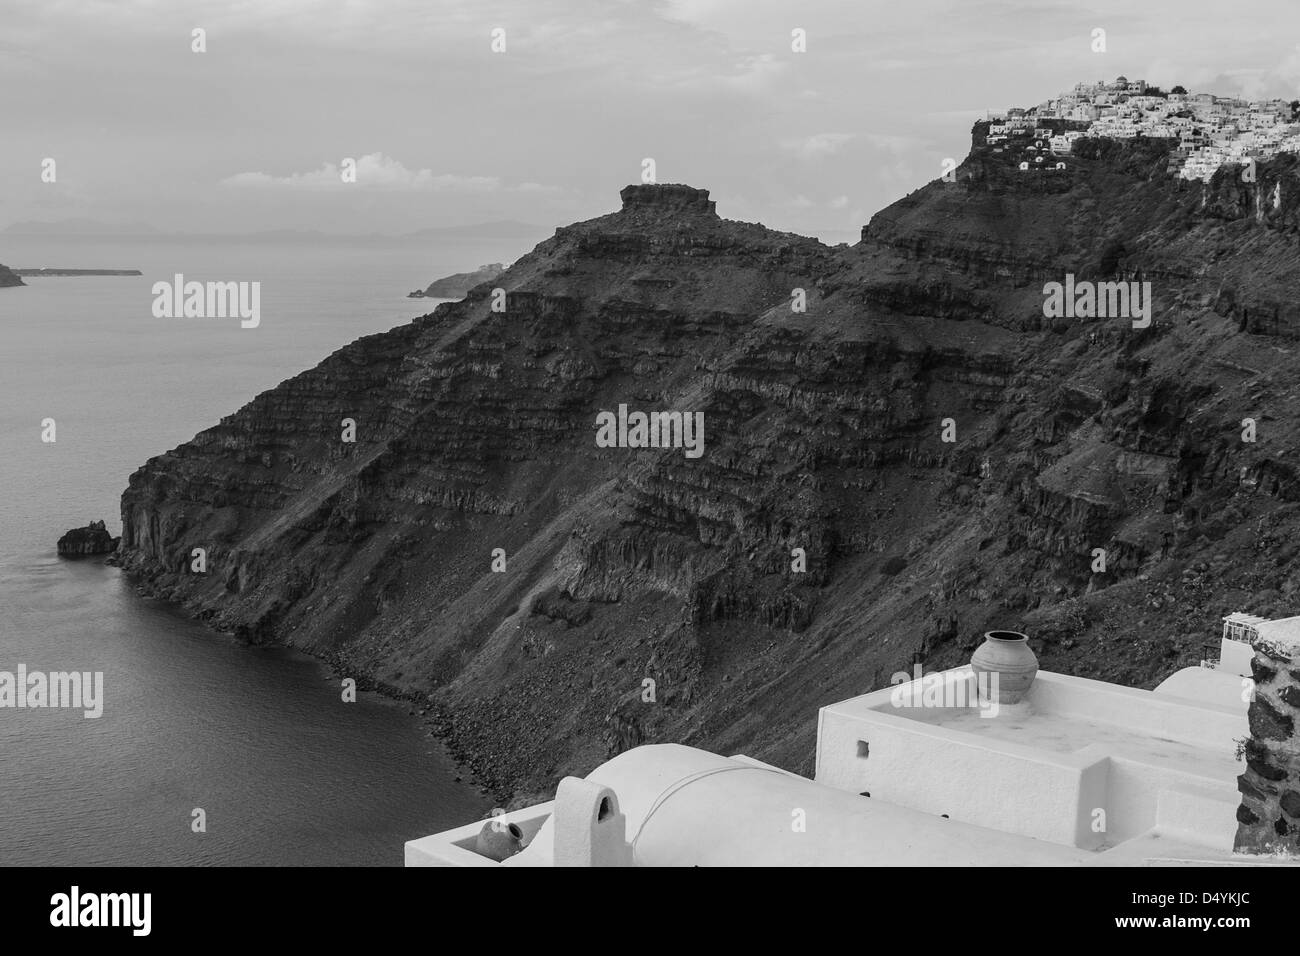 Picture taken in Santorini, Greece - Stock Image